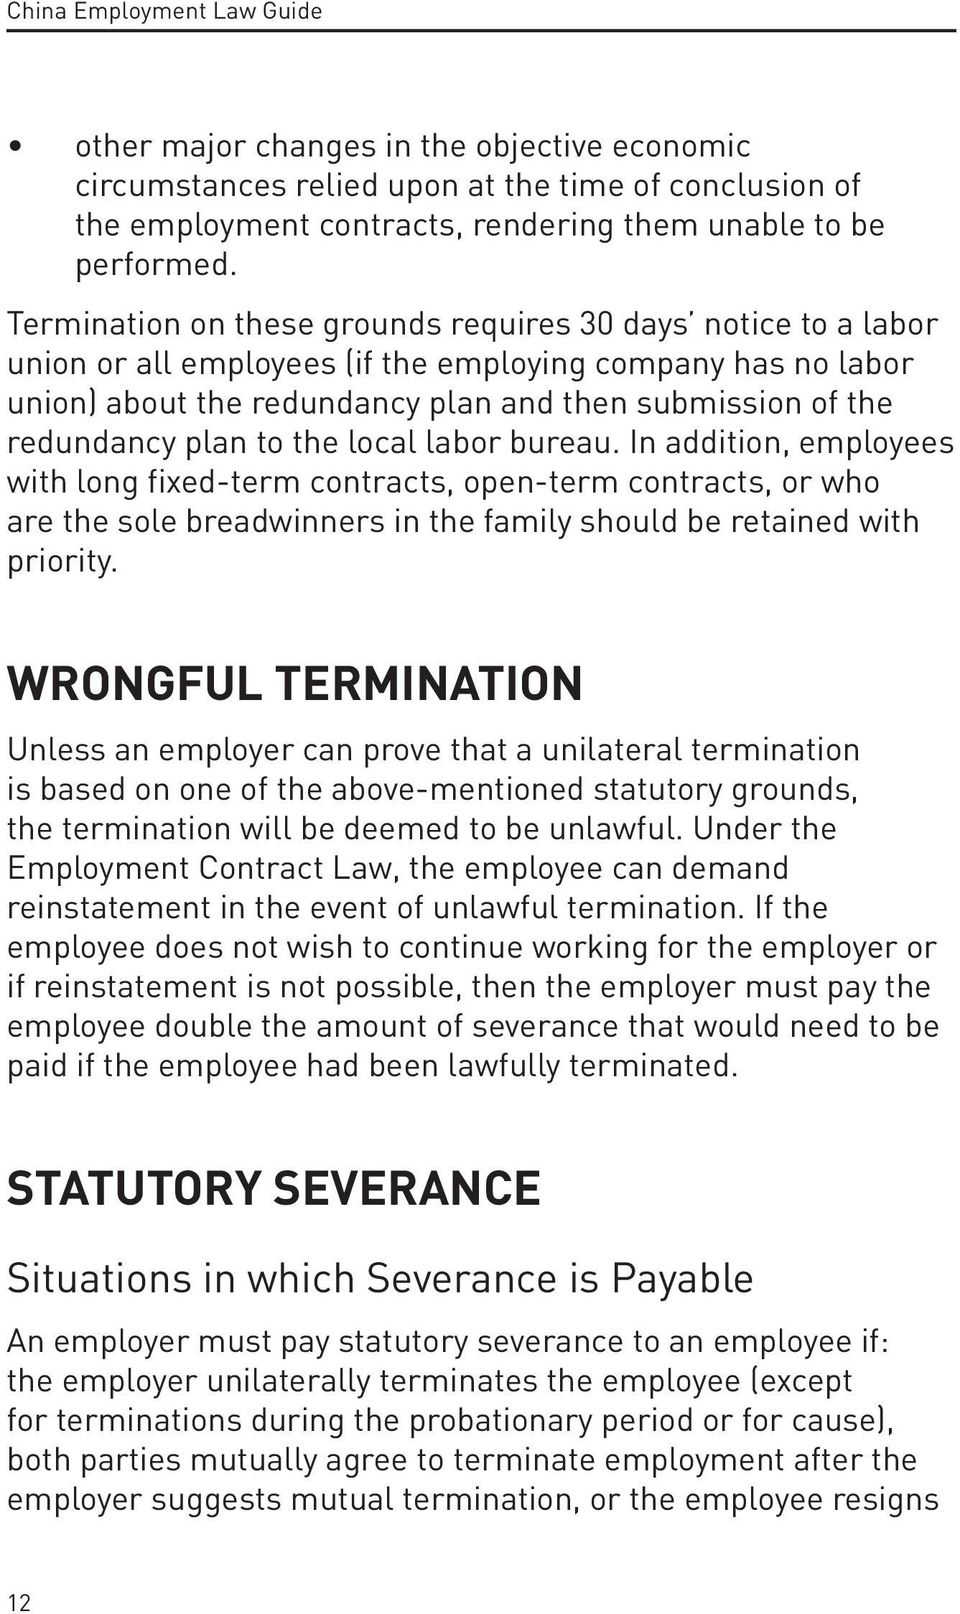 plan to the local labor bureau. In addition, employees with long fixed-term contracts, open-term contracts, or who are the sole breadwinners in the family should be retained with priority.